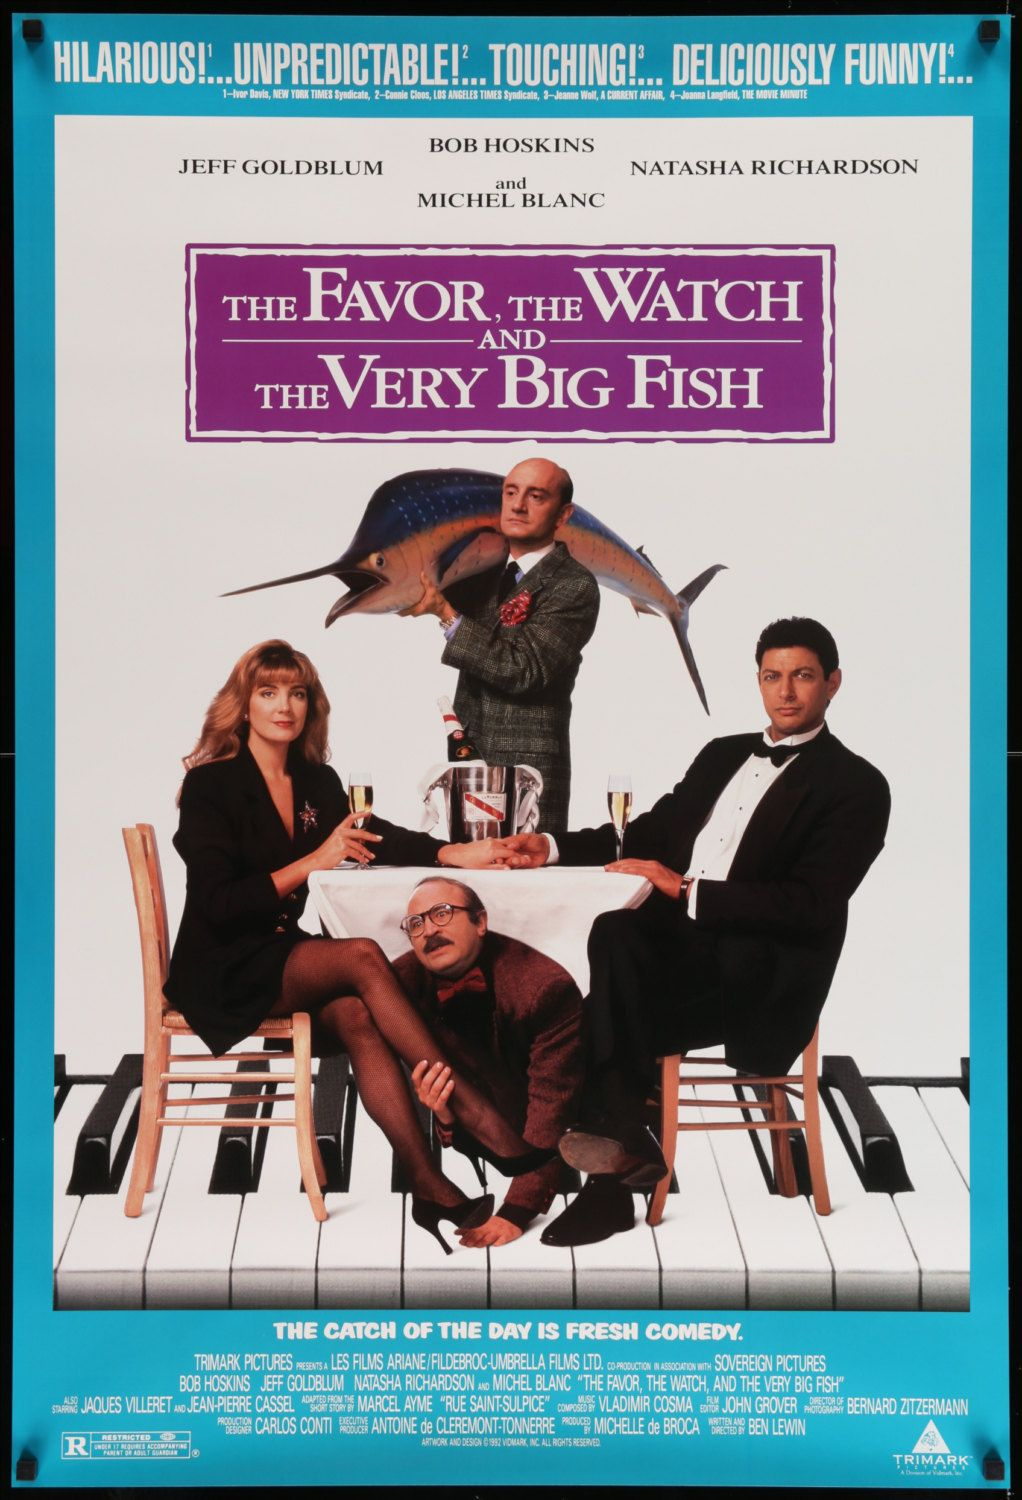 "The Favor, The Watch and the Very Big Fish (1991) This is a vintage, rolled, one-sheet (27""x40"") movie poster from 1991 for The Favor, The Watch and the Very Big Fish.  The film stars Bob Hoskins, Jeff Goldblum, Natasha Richardson, Michel Blanc, Jacques Villeret, and Jean-Pierre Cassel.  Ben Lewin wrote and directed the comedy."